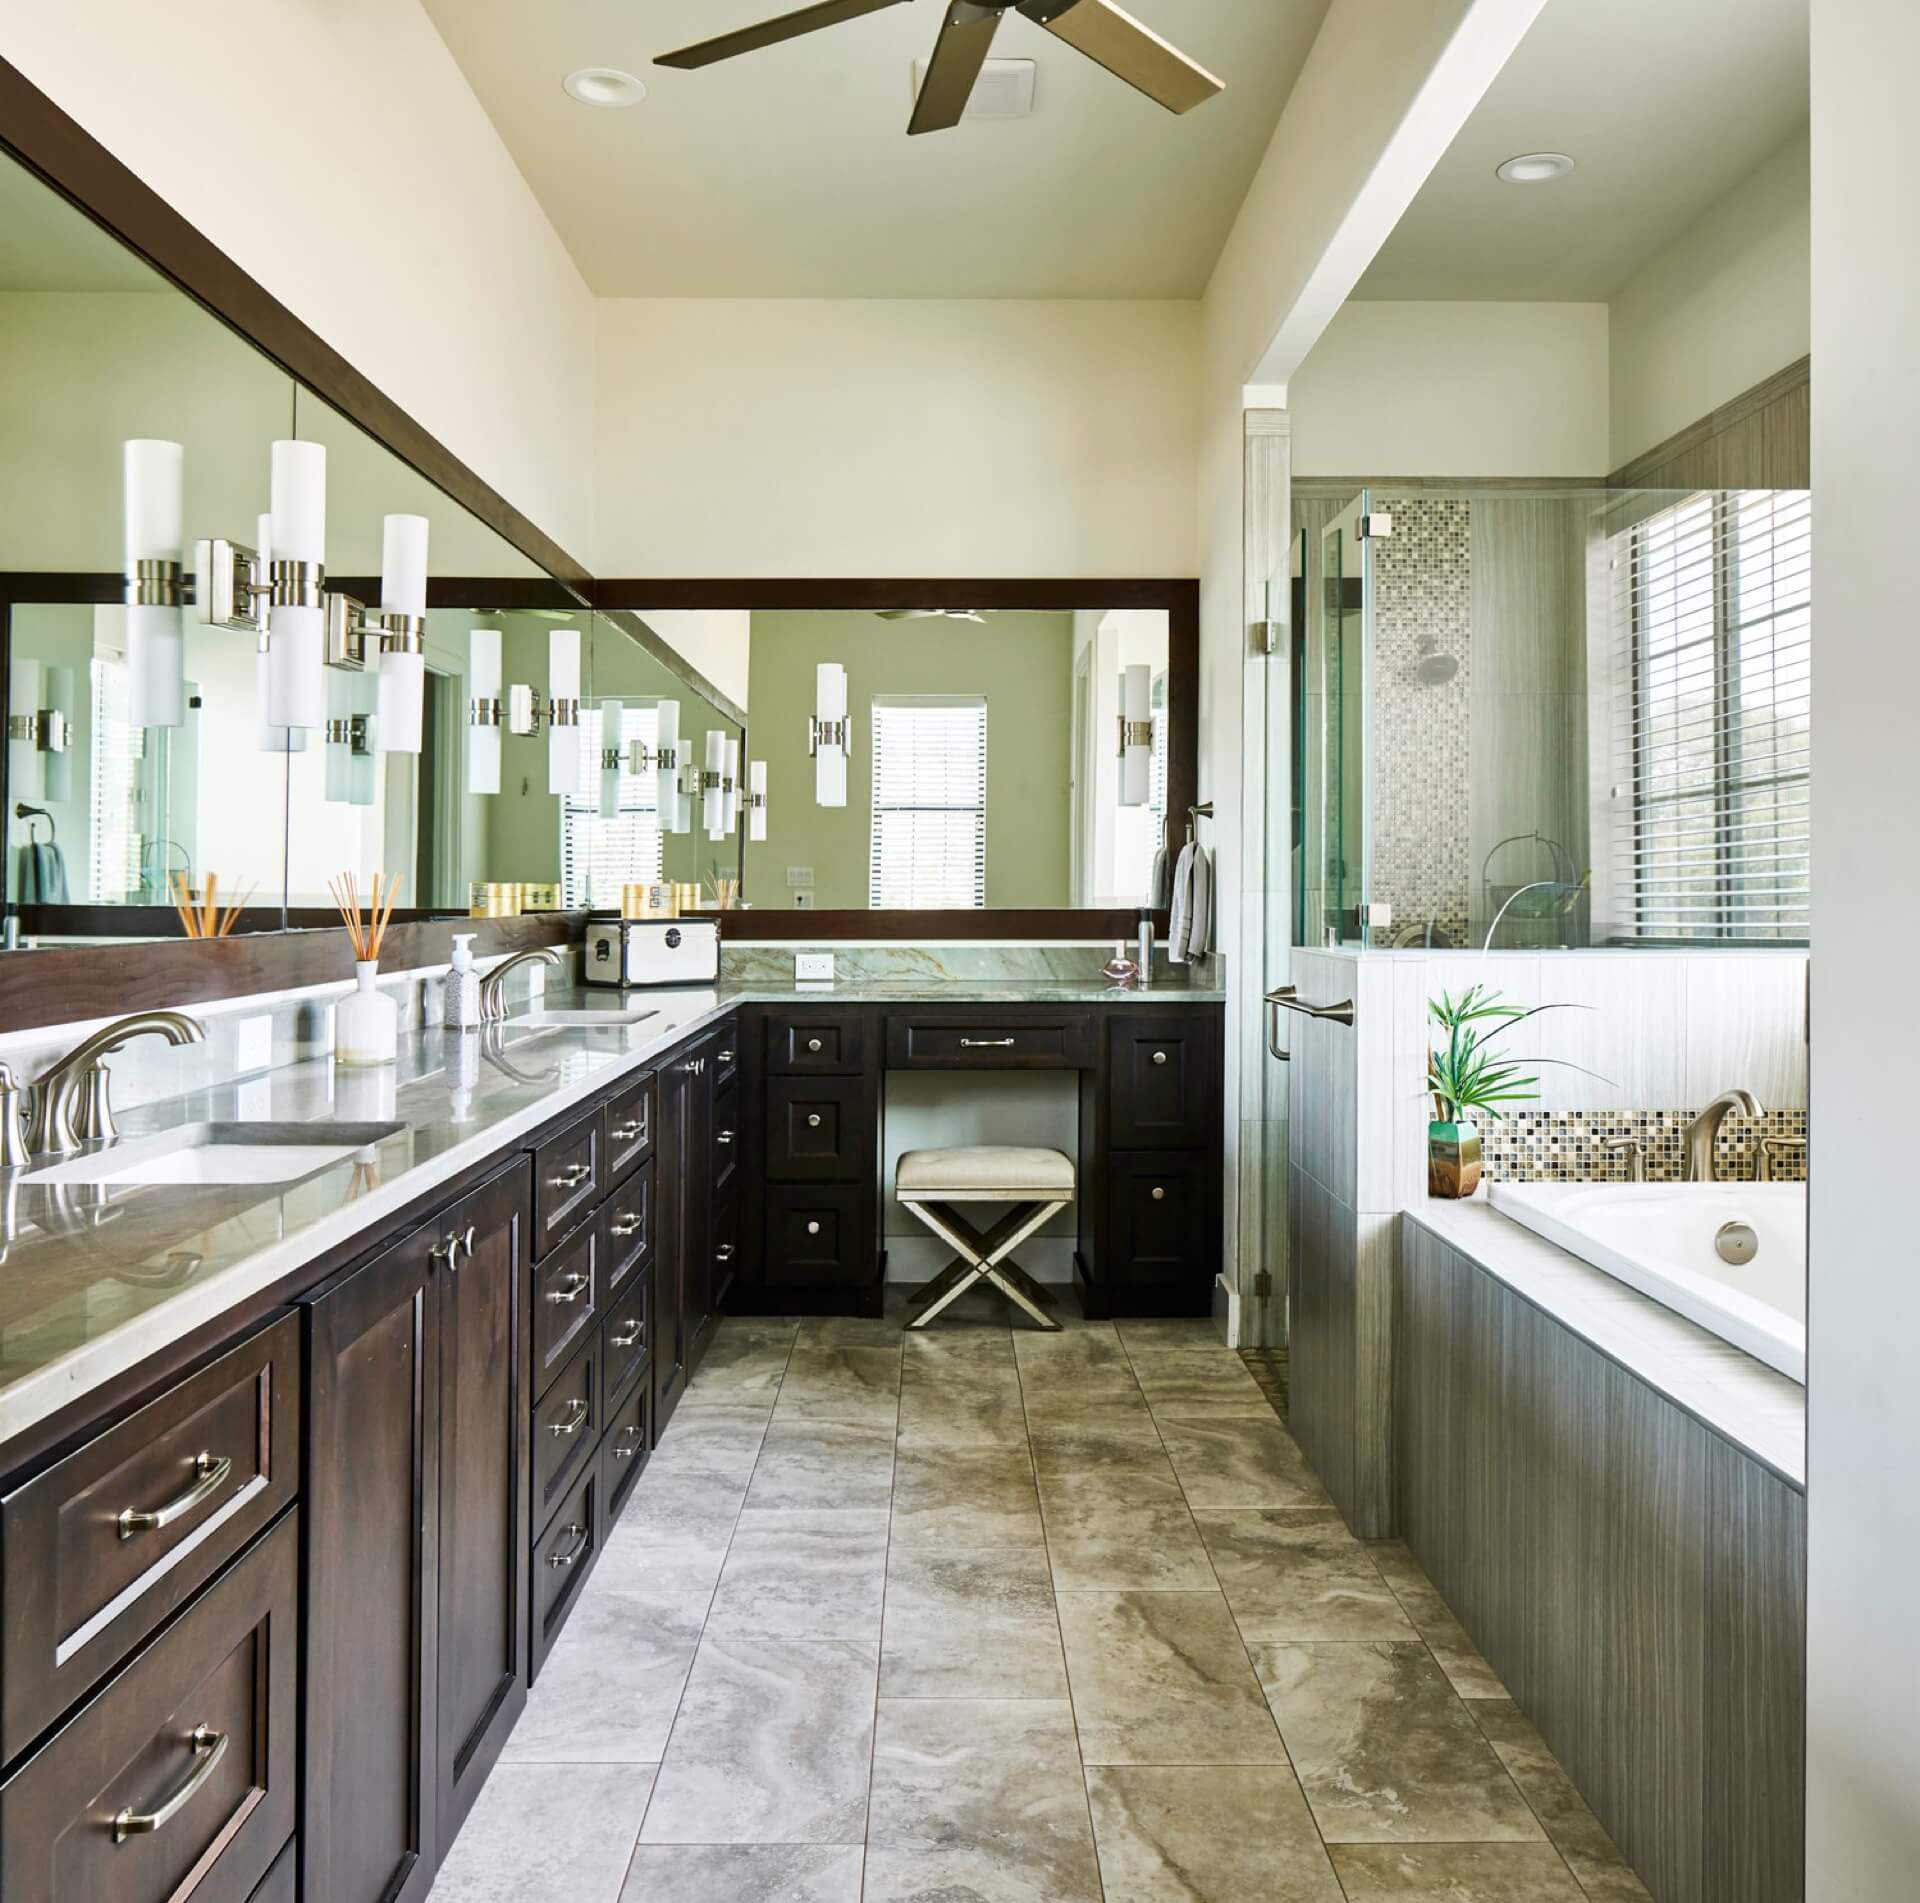 Bathroom Cabinets - Michael Edwards Custom Cabinets